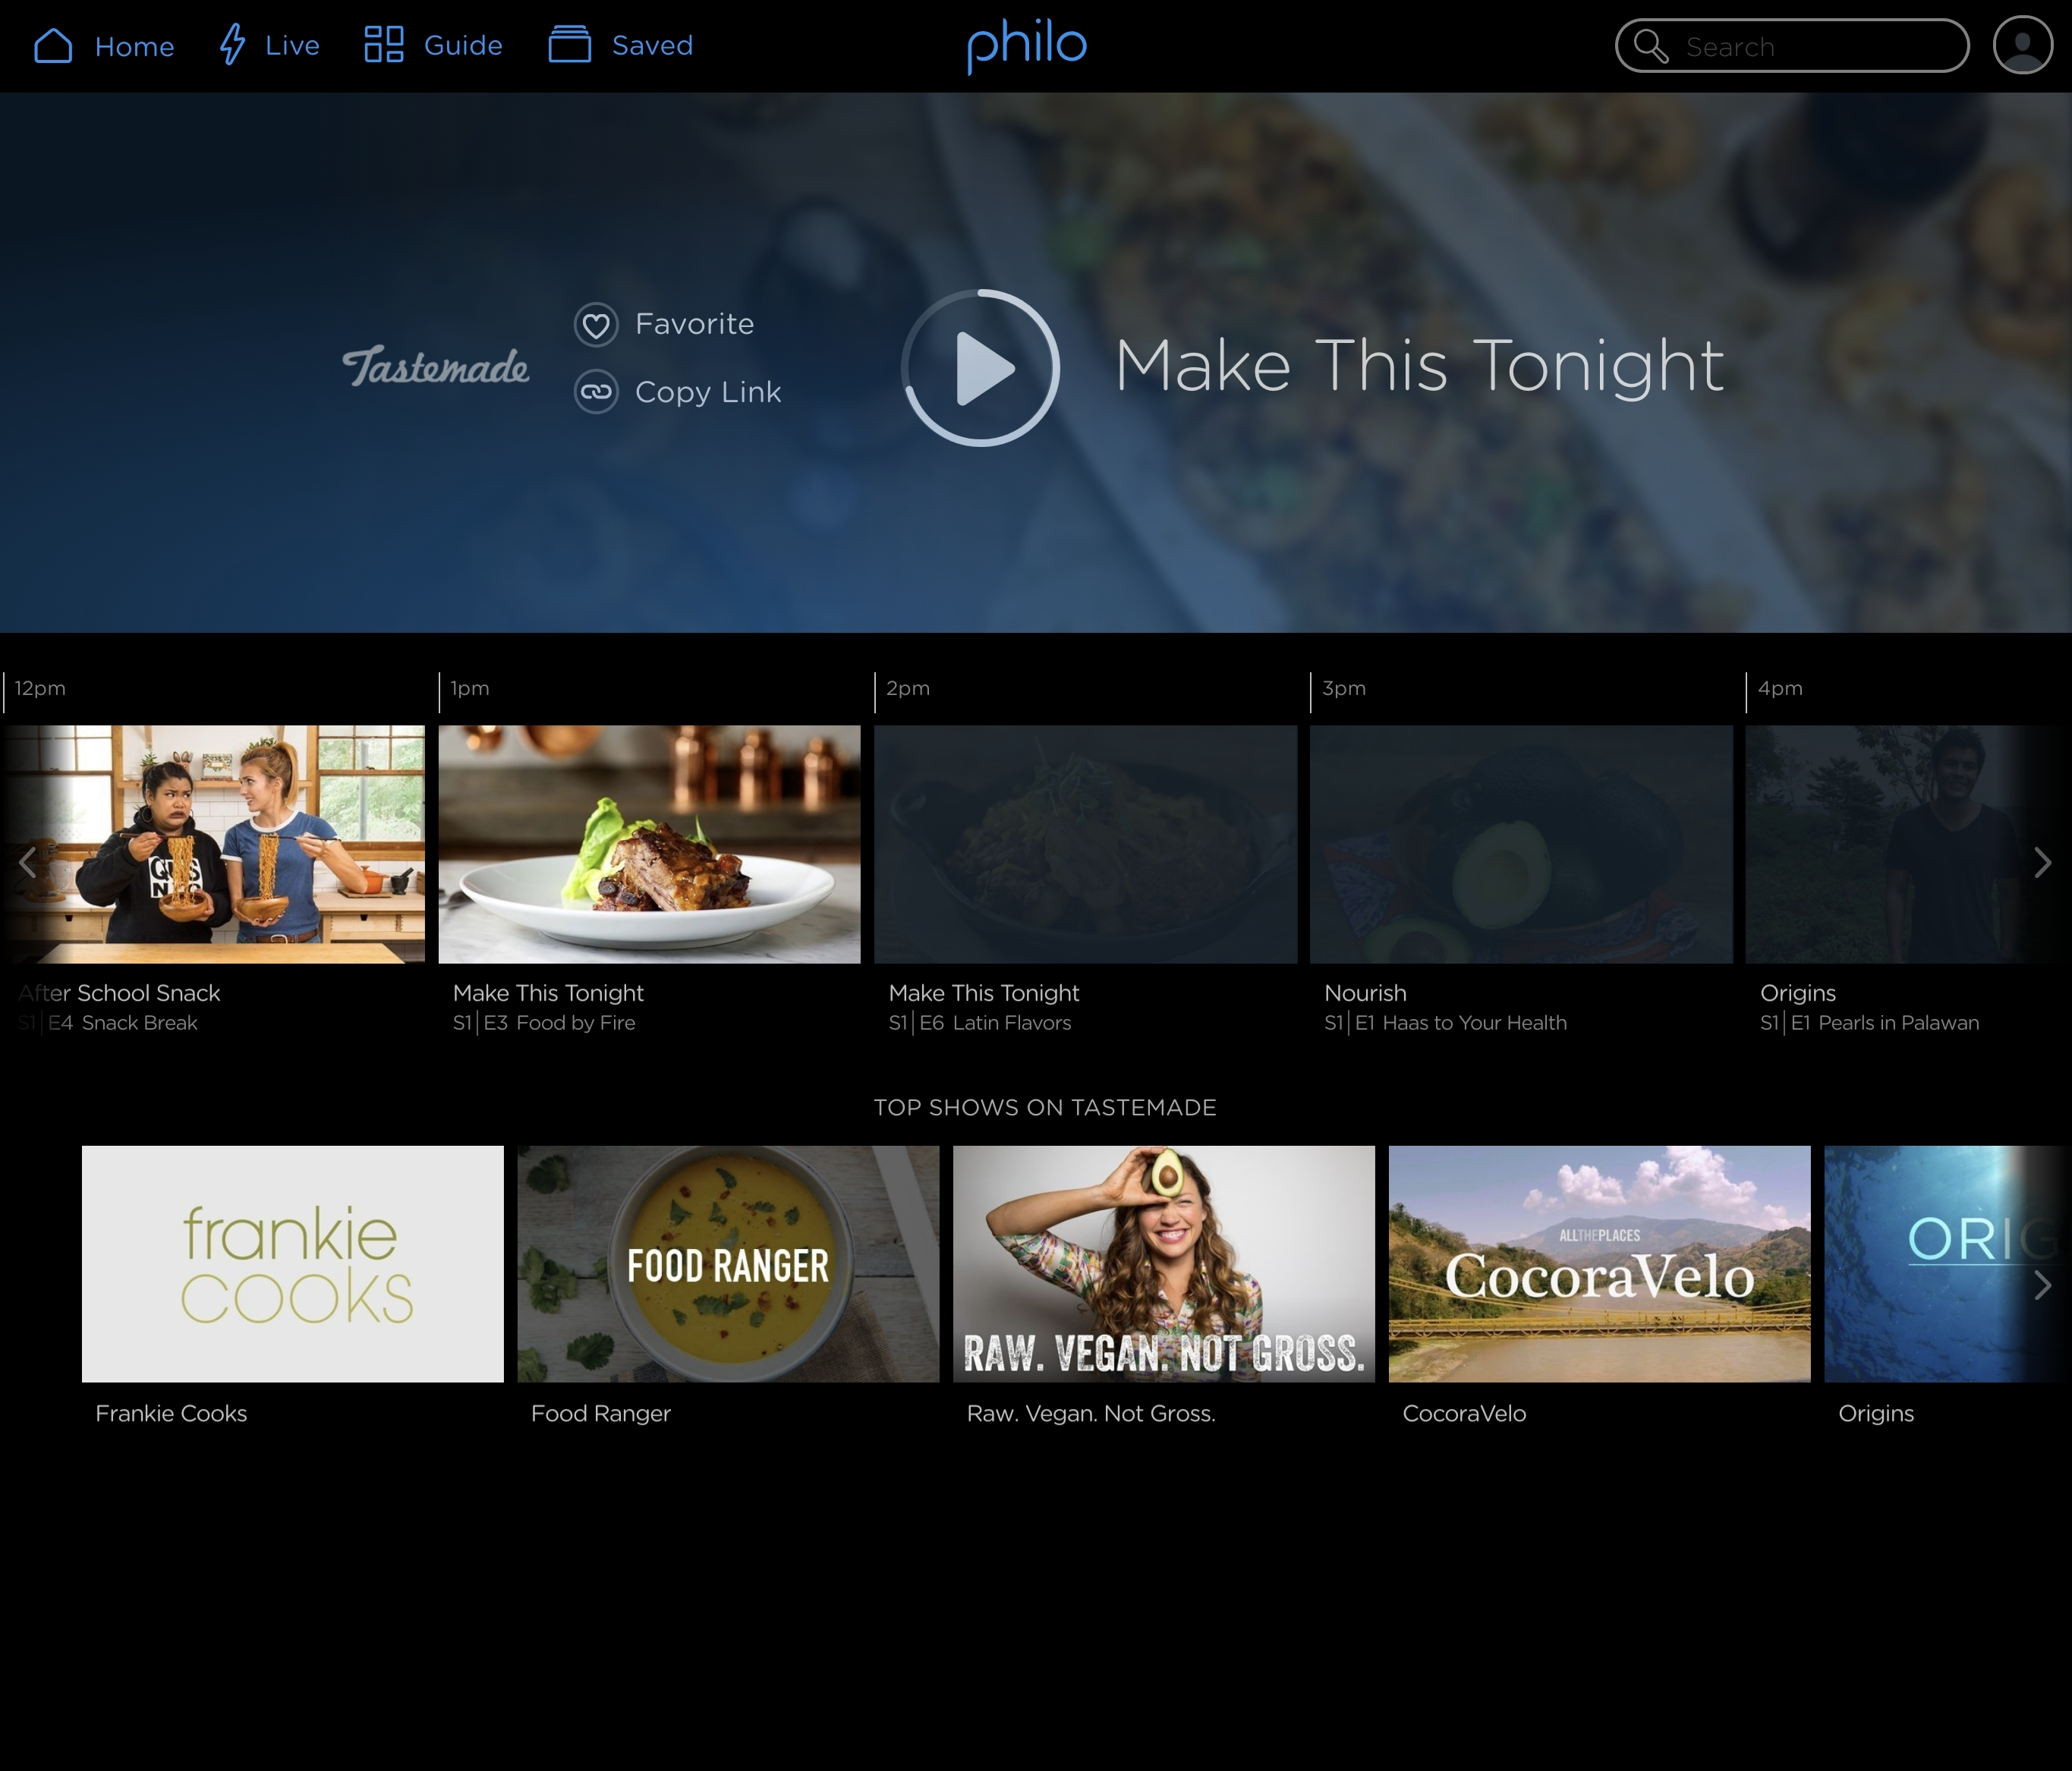 Philo adds new channels, $5 referral credit | FierceVideo